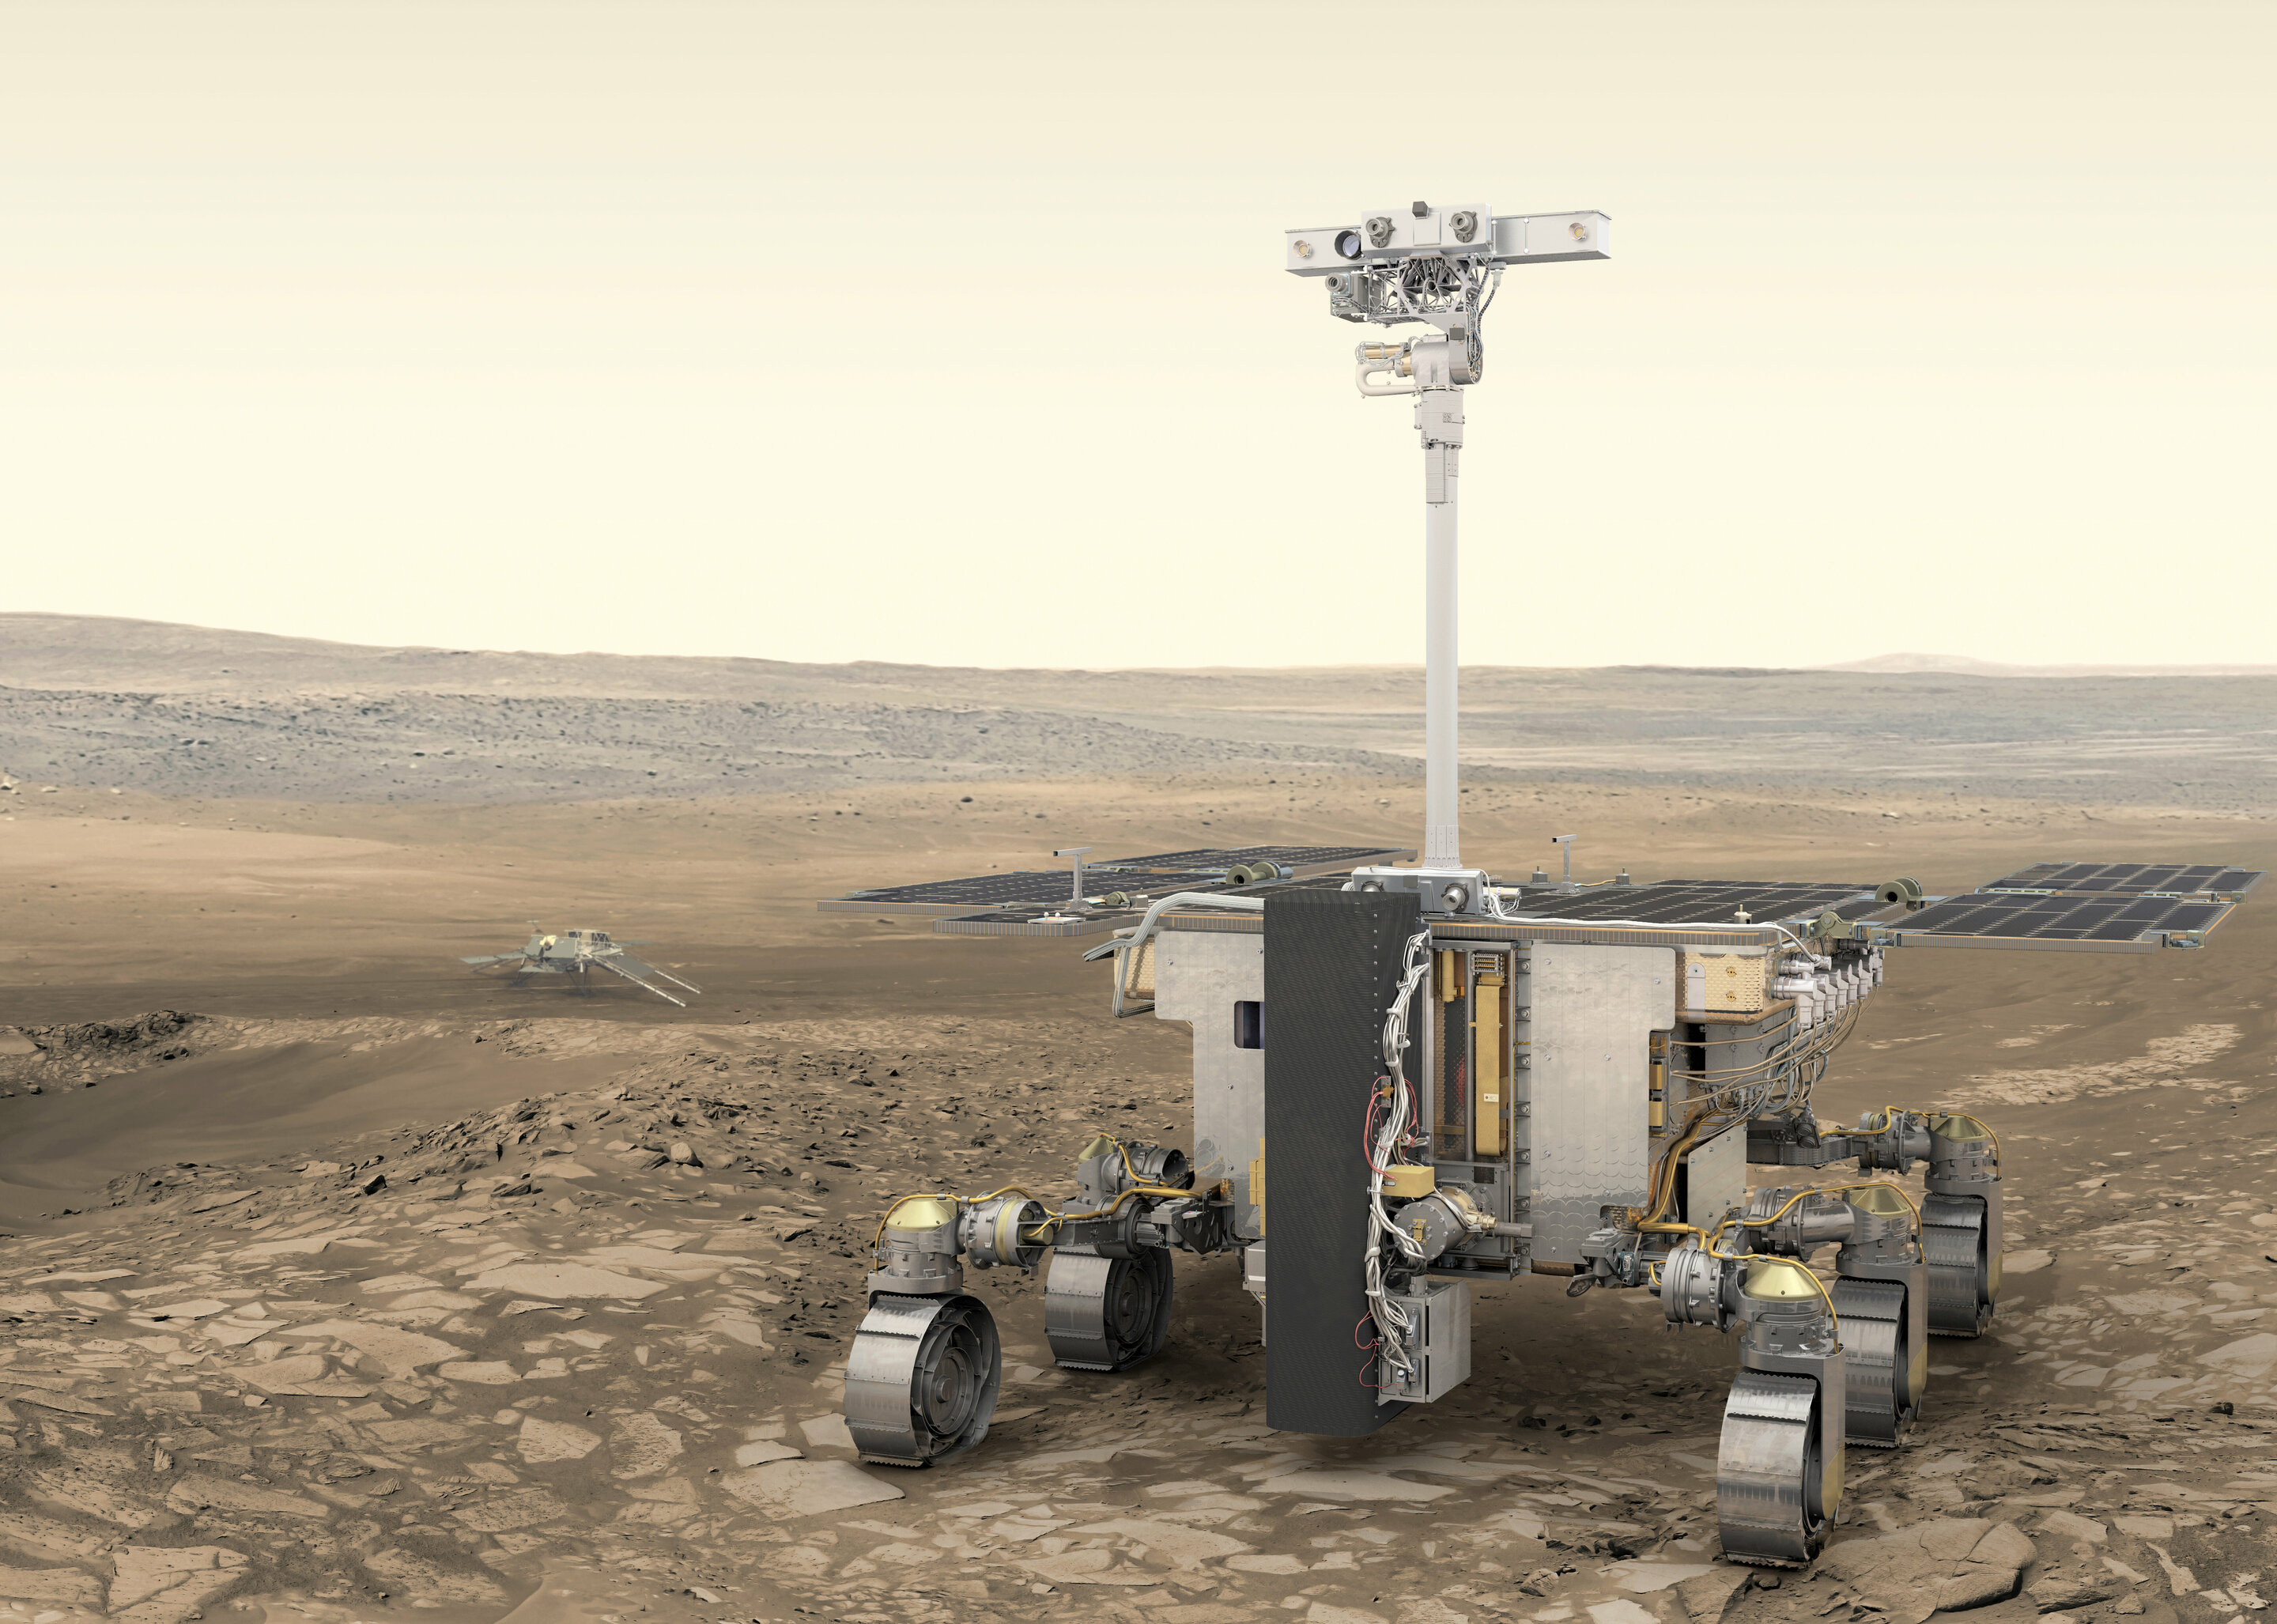 ESA's Mars rover has a name – Rosalind Franklin